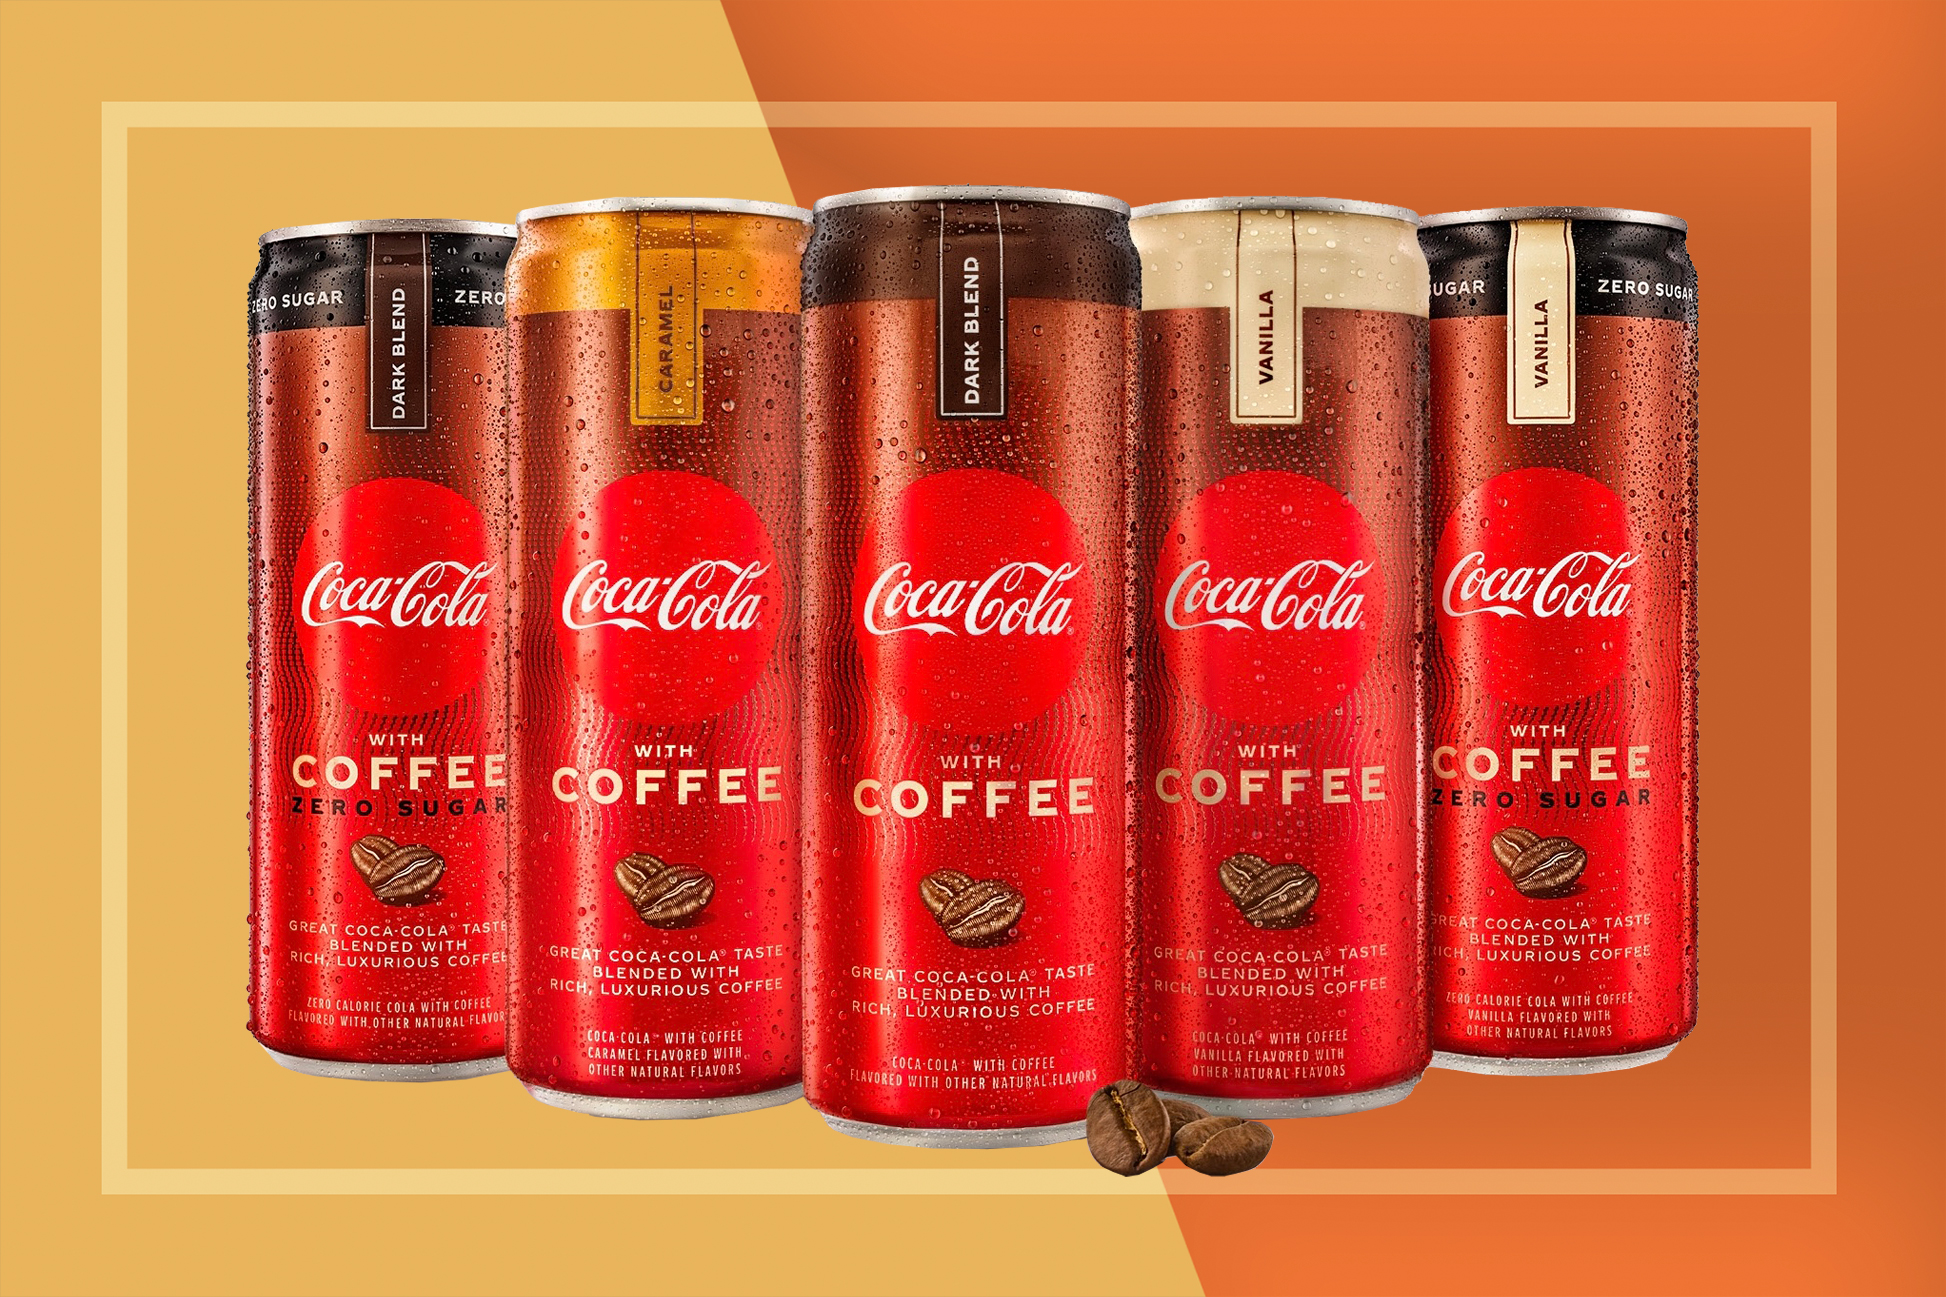 Coca-Cola with Coffee Cans